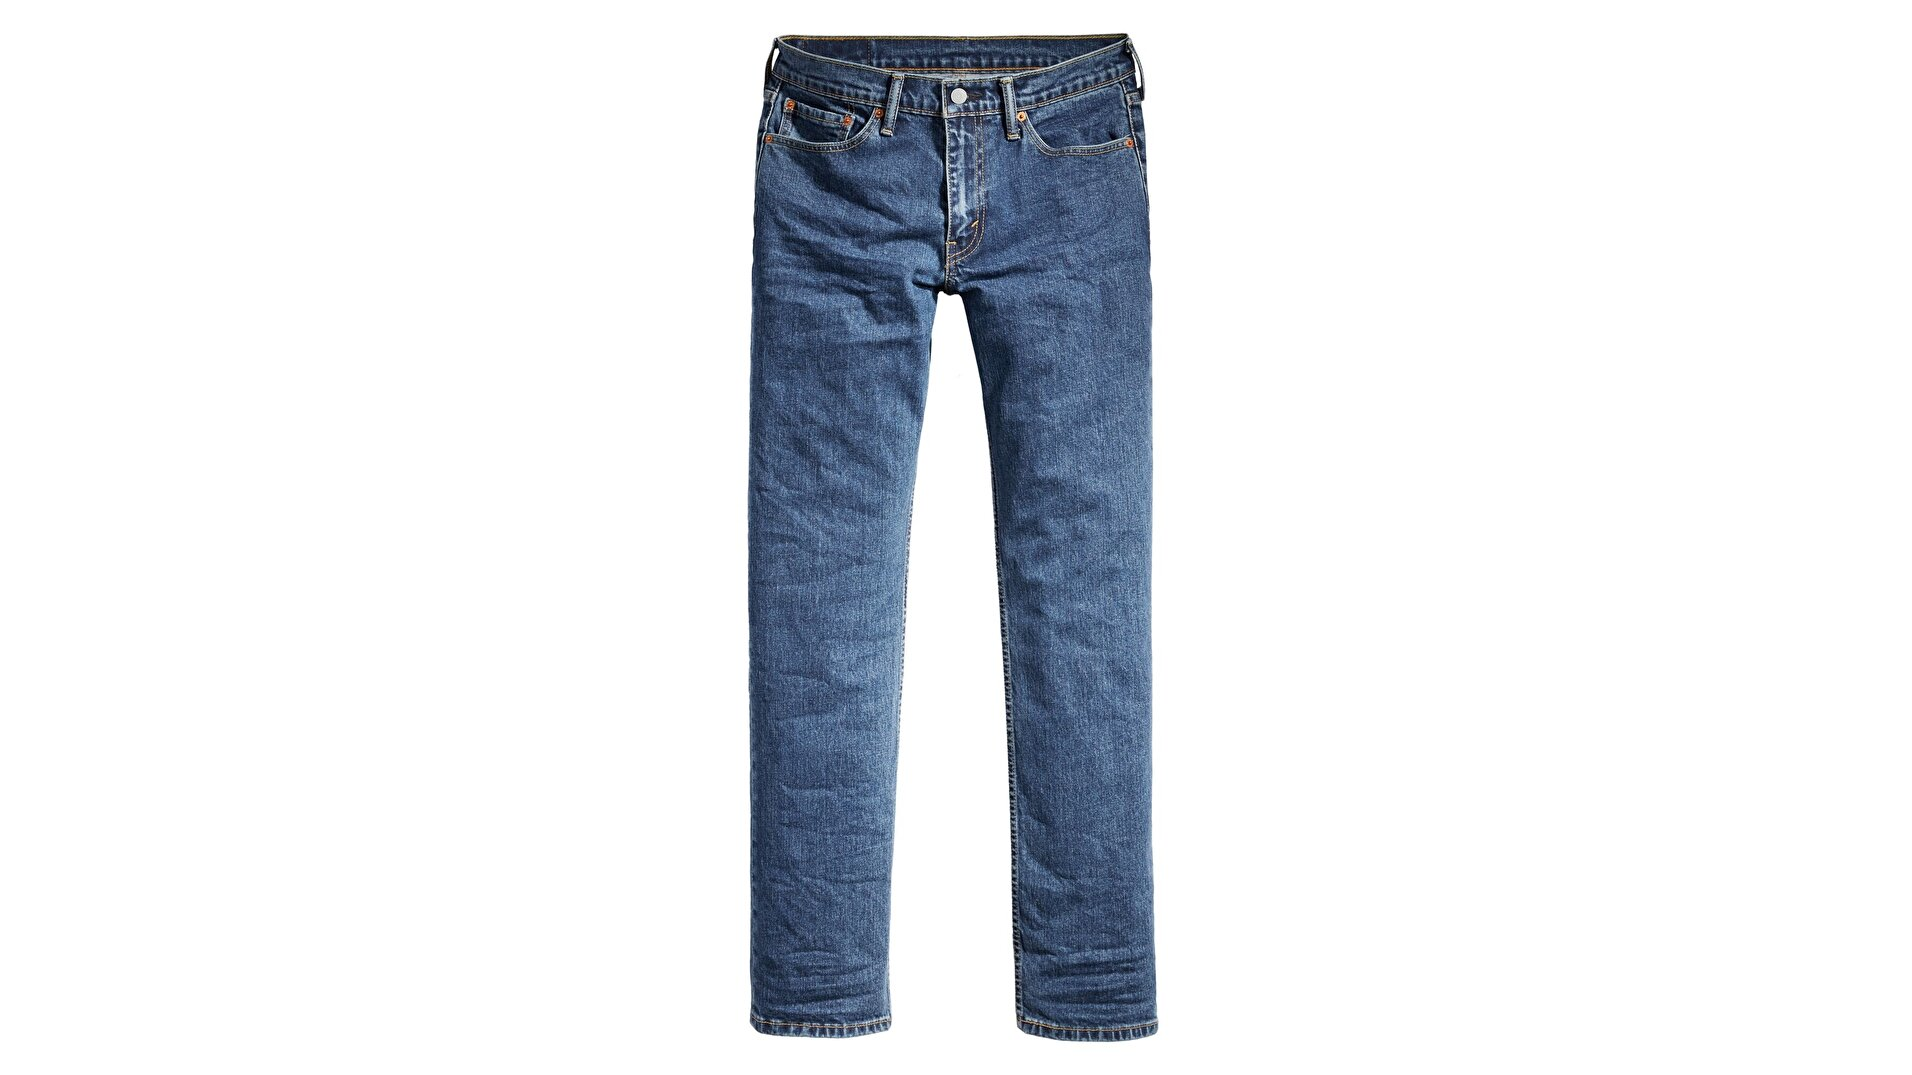 514™ Straight Fit Erkek Jean Pantolon-Stonewash Stretch T2